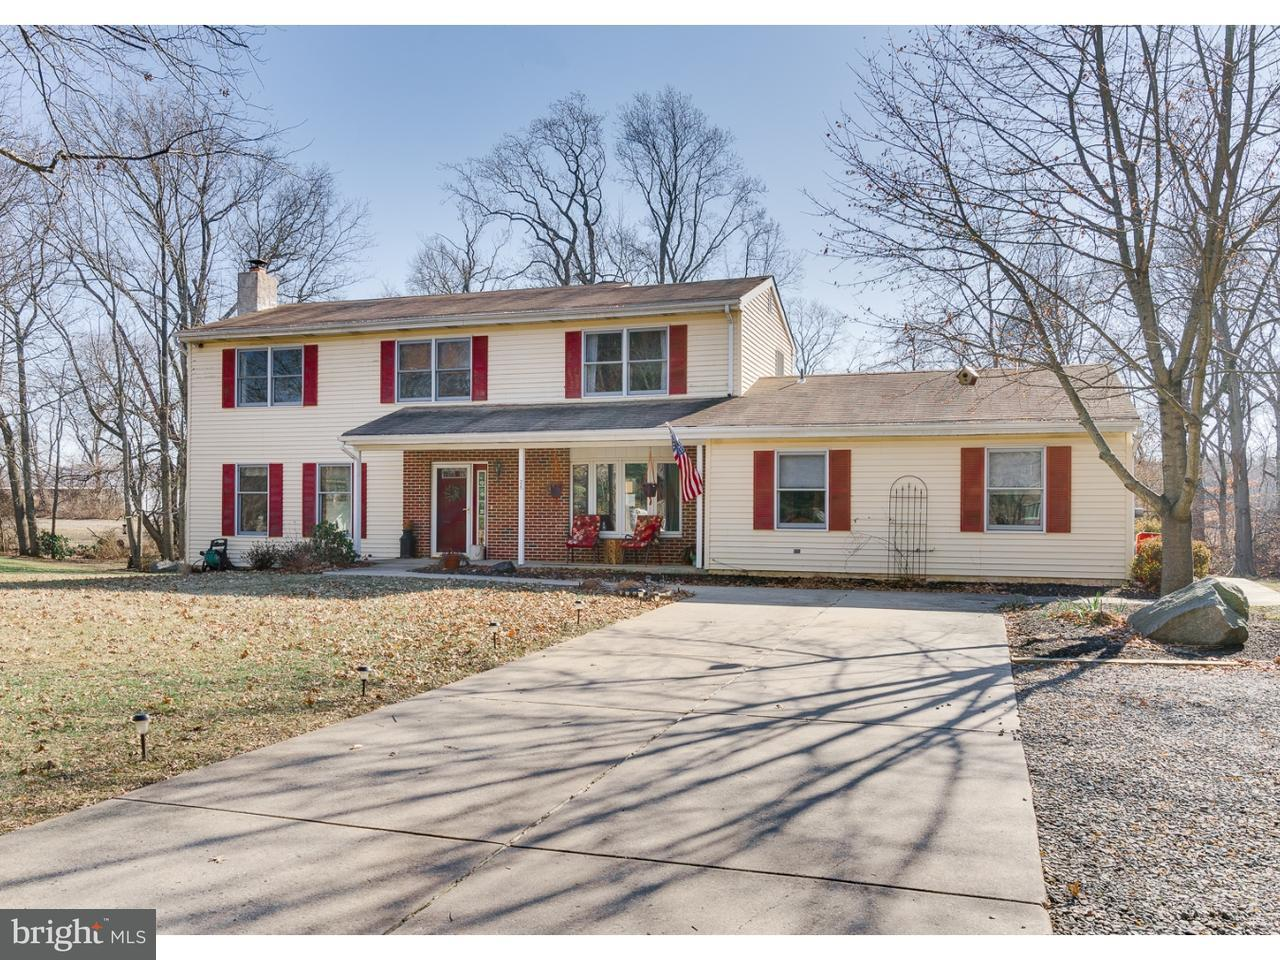 Single Family Home for Sale at 26 CROMWELL Drive Chesterfield, New Jersey 08515 United StatesMunicipality: Chesterfield Township